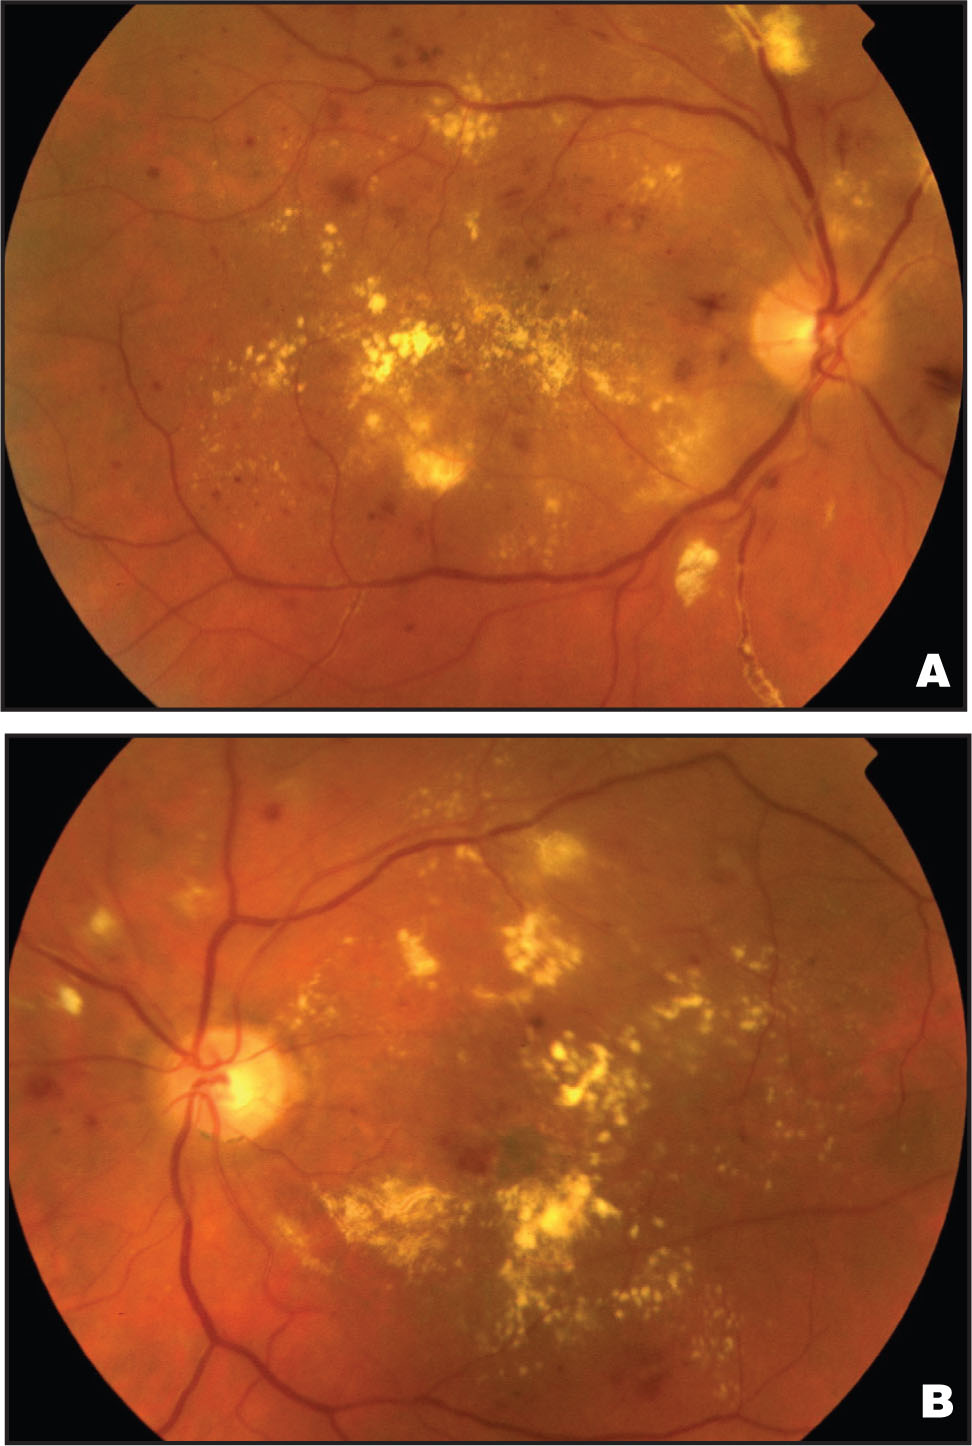 (A) Fundus Photograph of the Right Eye in Case #1, Showing Diffuse Diabetic Macular Edema and Vascular Sheathing. (B) Fundus Photograph of the Left Eye Illustrating Diffuse Diabetic Macular Edema and Cotton-Wool Spots.